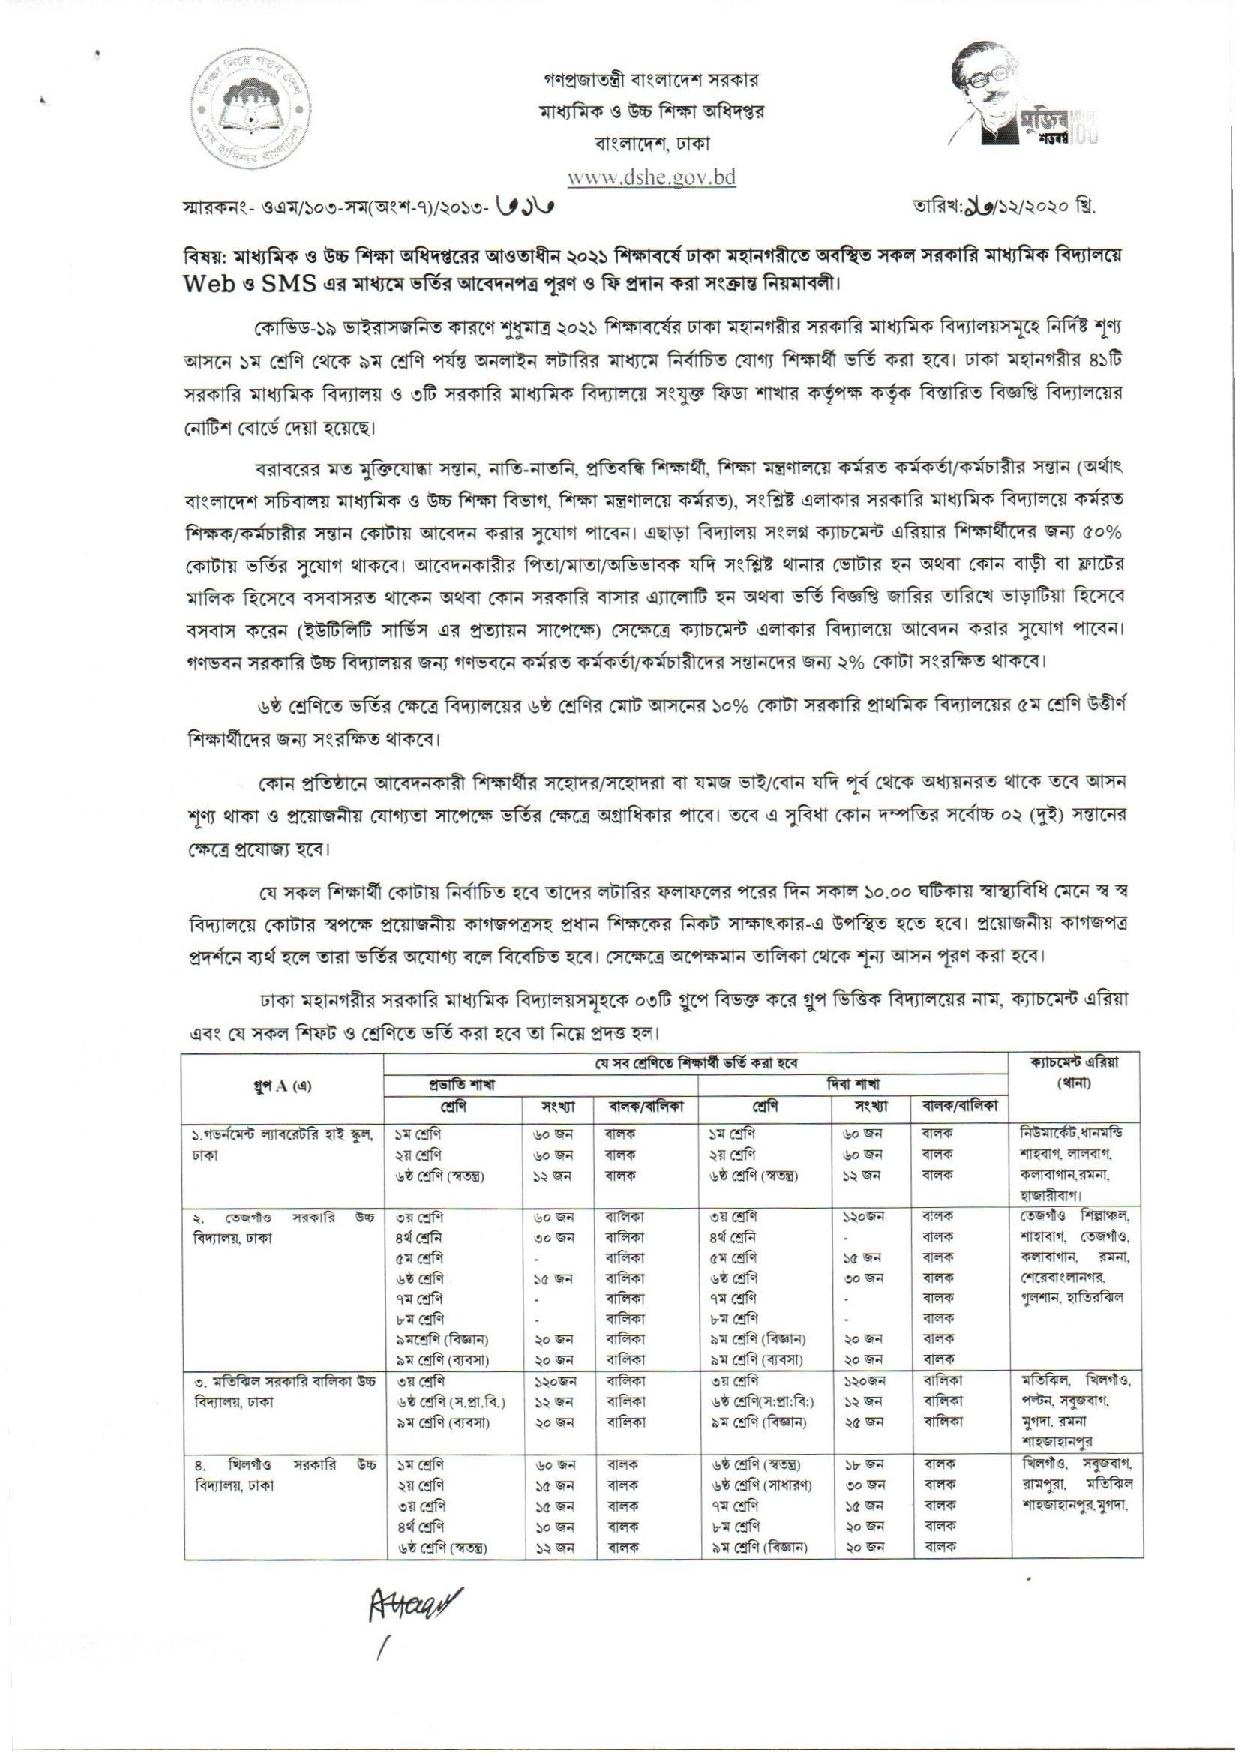 all-dhaka-Admission-Result-2021-page-001